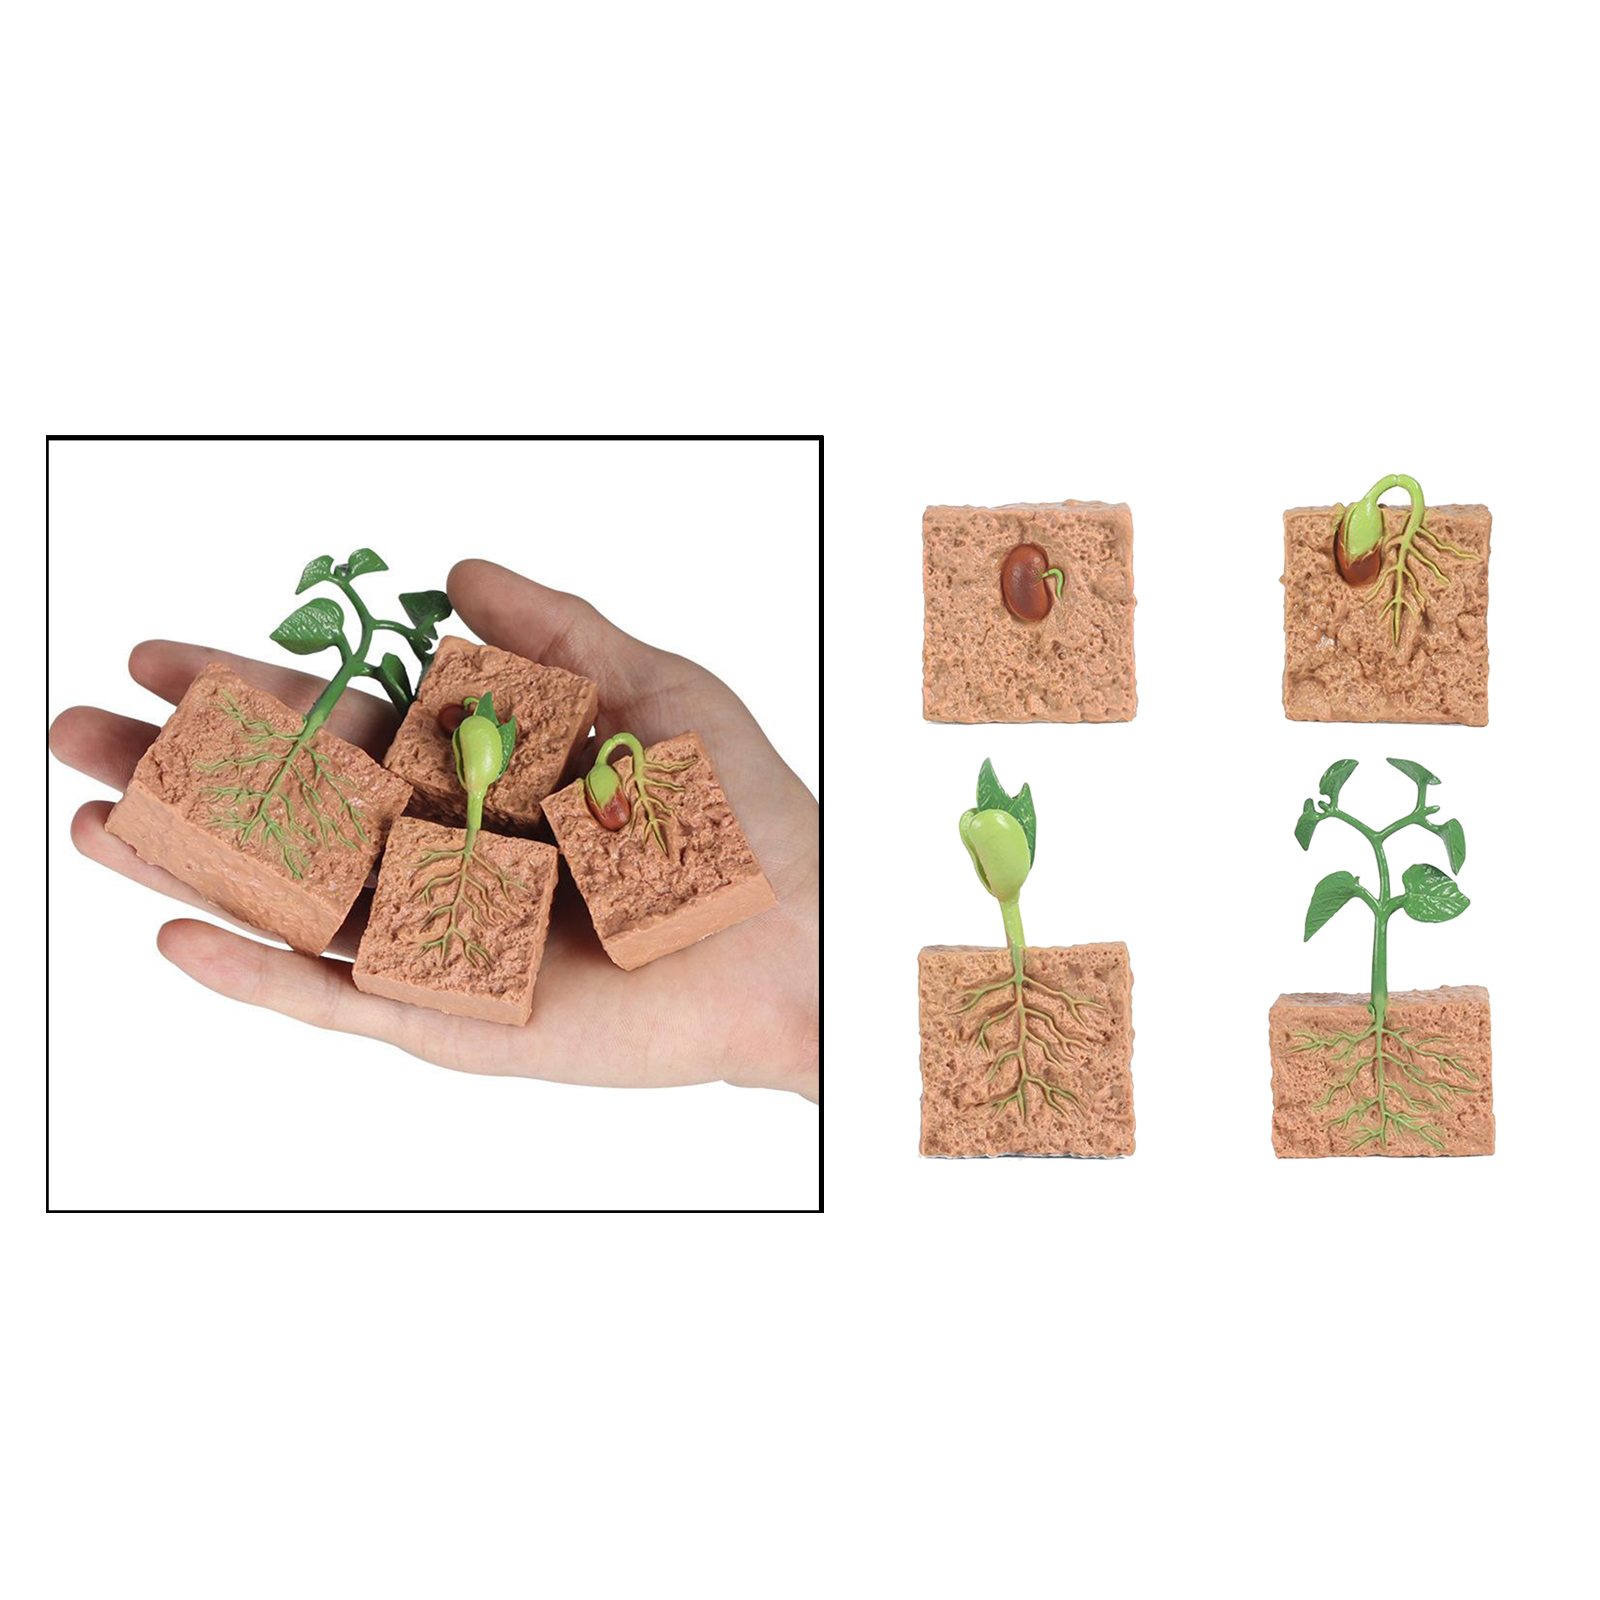 Kids Plant Seeds Growth Life Cycle Playset Cognitive Toys Teaching Aids 4